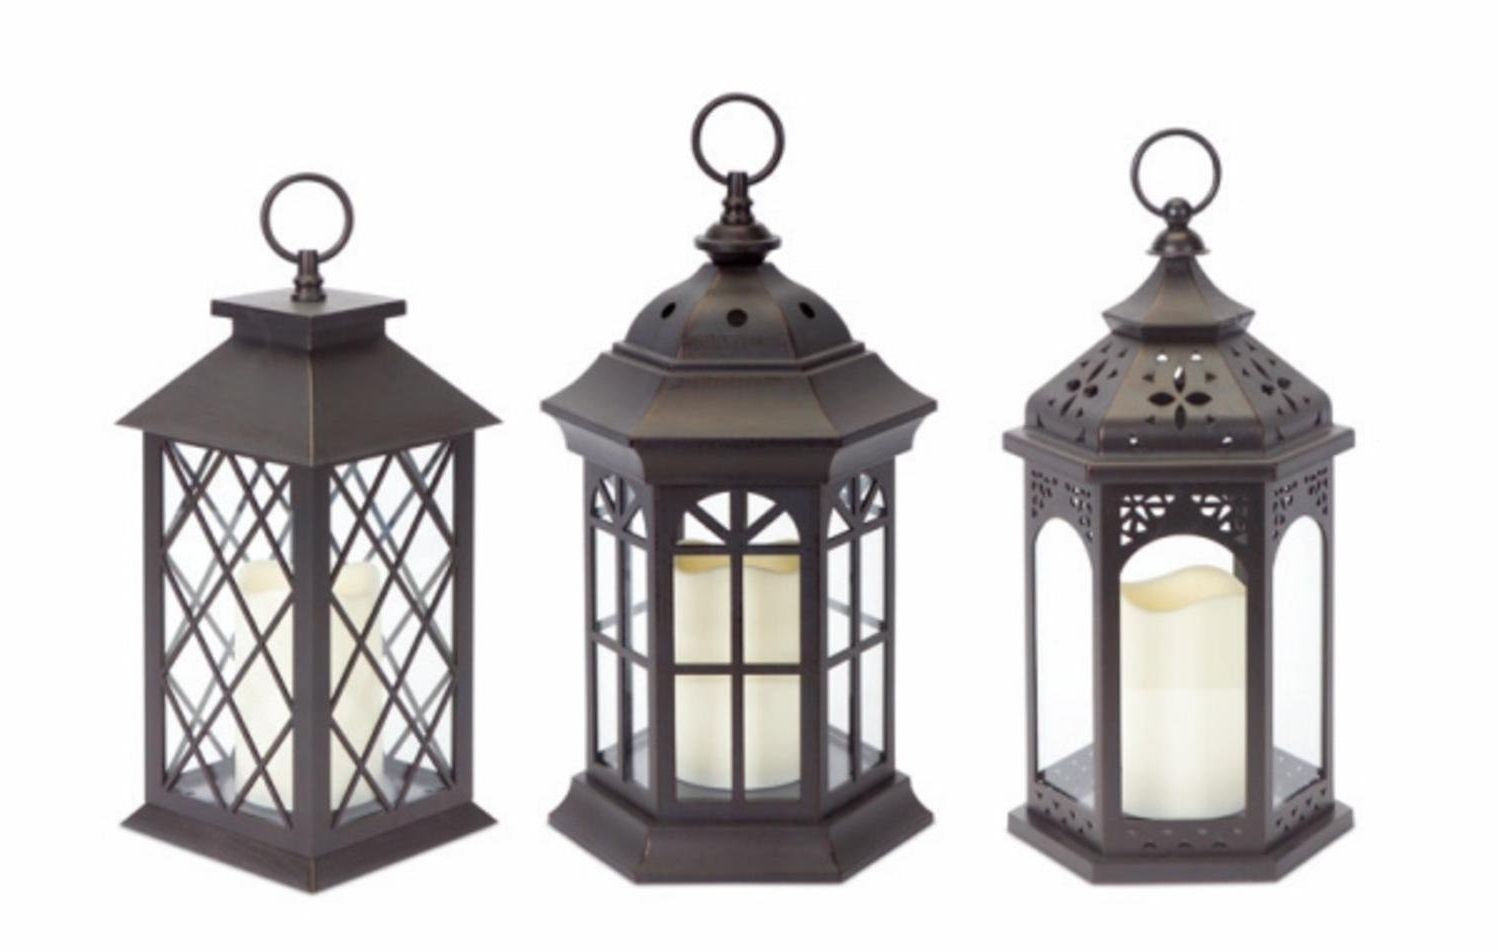 Cheap Outdoor Lanterns Candle, Find Outdoor Lanterns Candle Deals On Intended For Most Popular Jumbo Outdoor Lanterns (View 4 of 20)